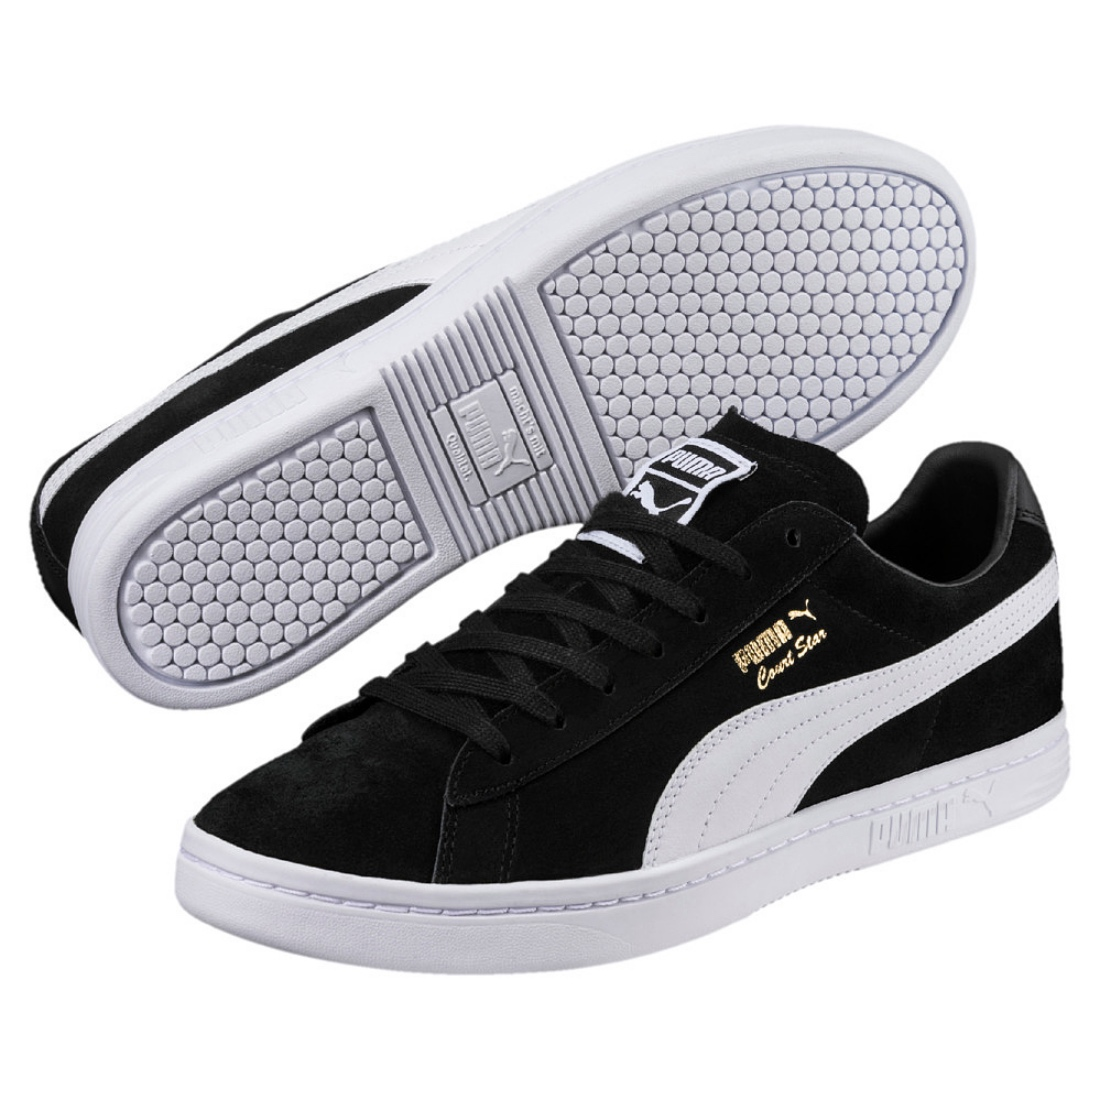 the latest 0a21b 291b6 Details about Puma Court Star FS Suede Unisex Adult Sneakers Trainers Shoes  Trainers 366574